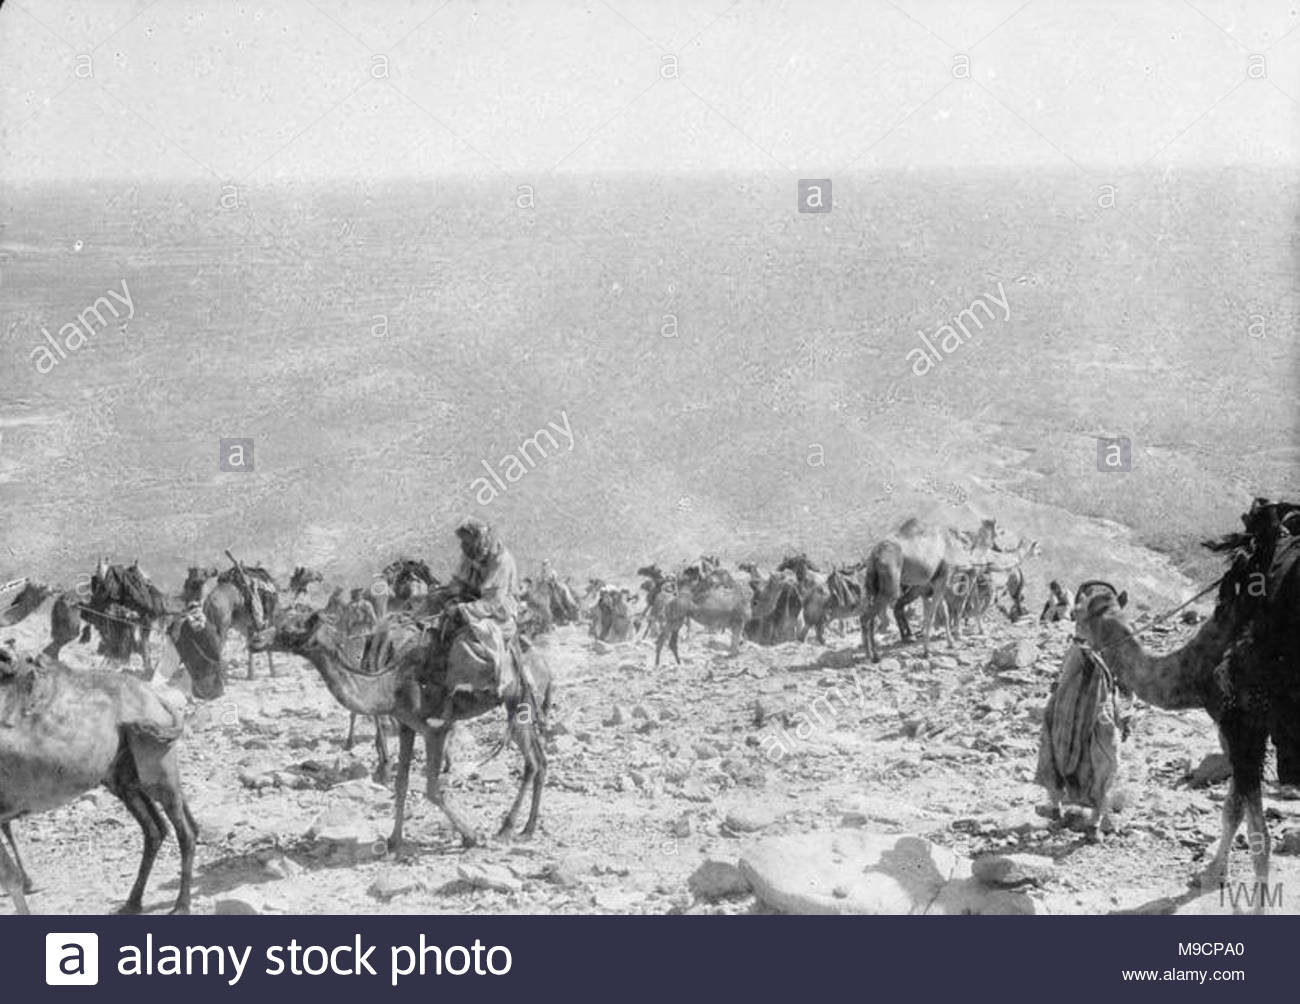 Arab Troops Stock Photos & Arab Troops Stock Images - Alamy